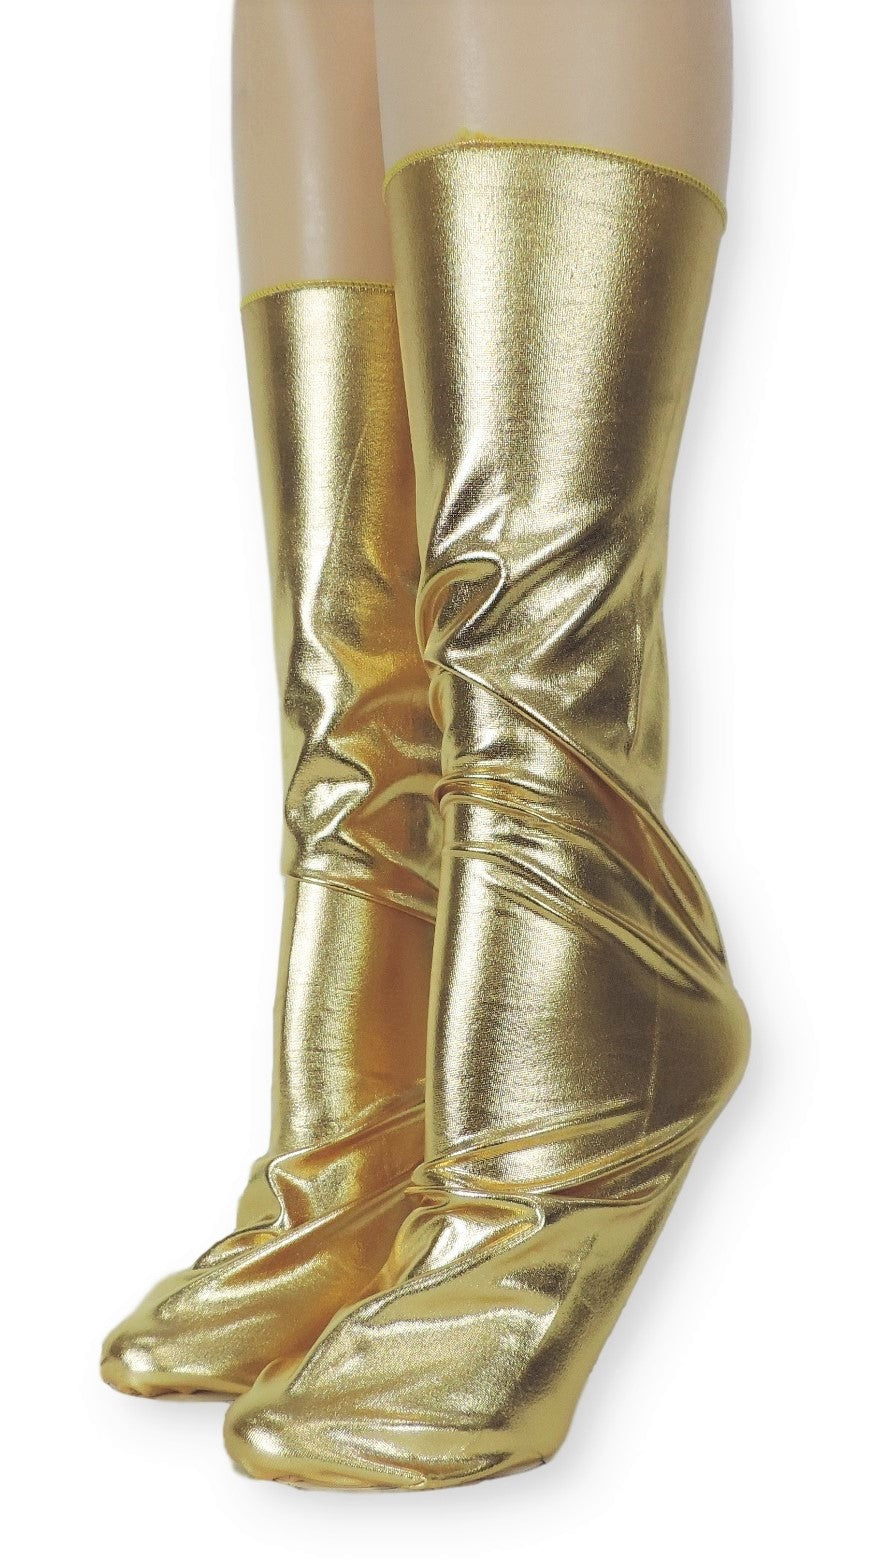 Metallic Gold Reflective Socks